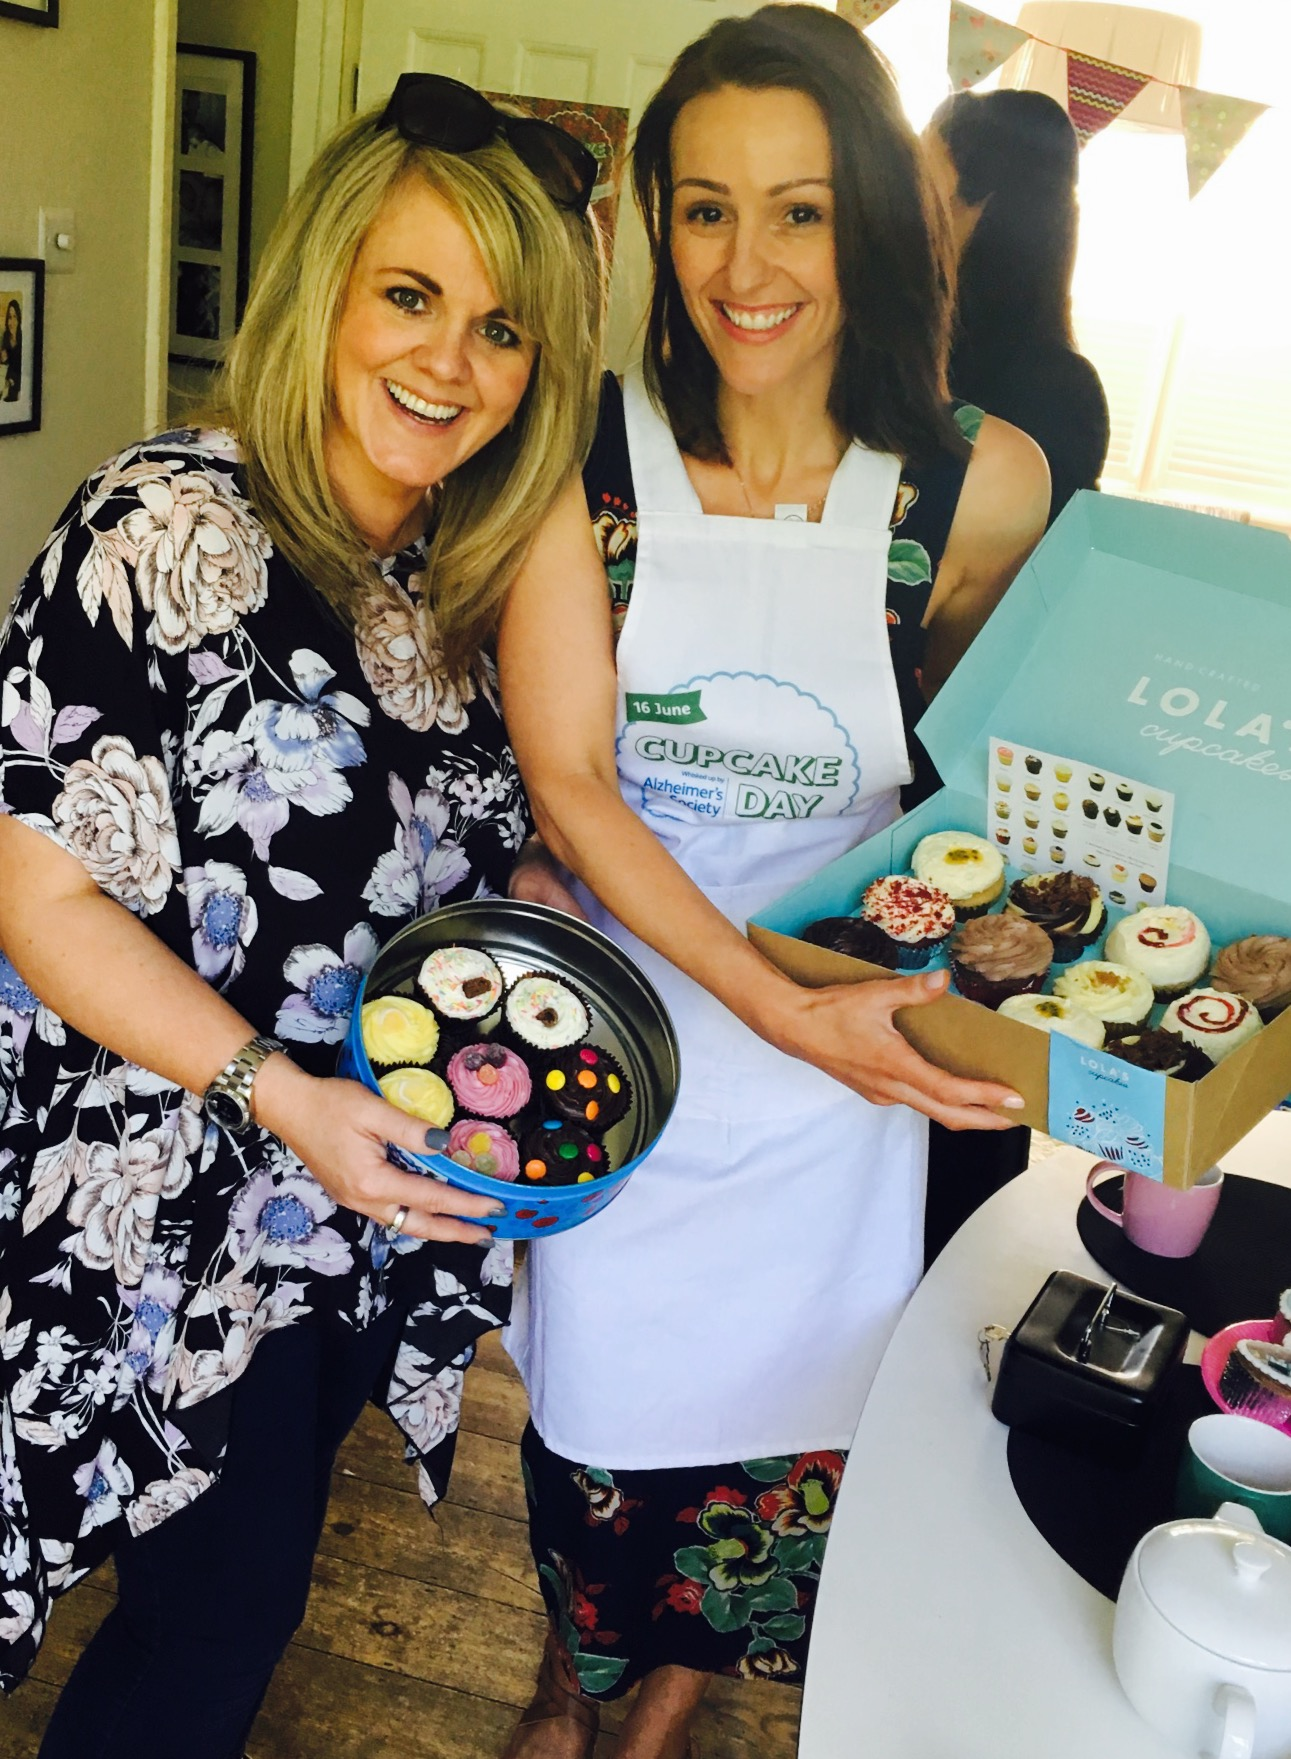 Suranne Jones and Sally Lindsay display cupcakes on sale at Surannes  Cupcake Day party ""